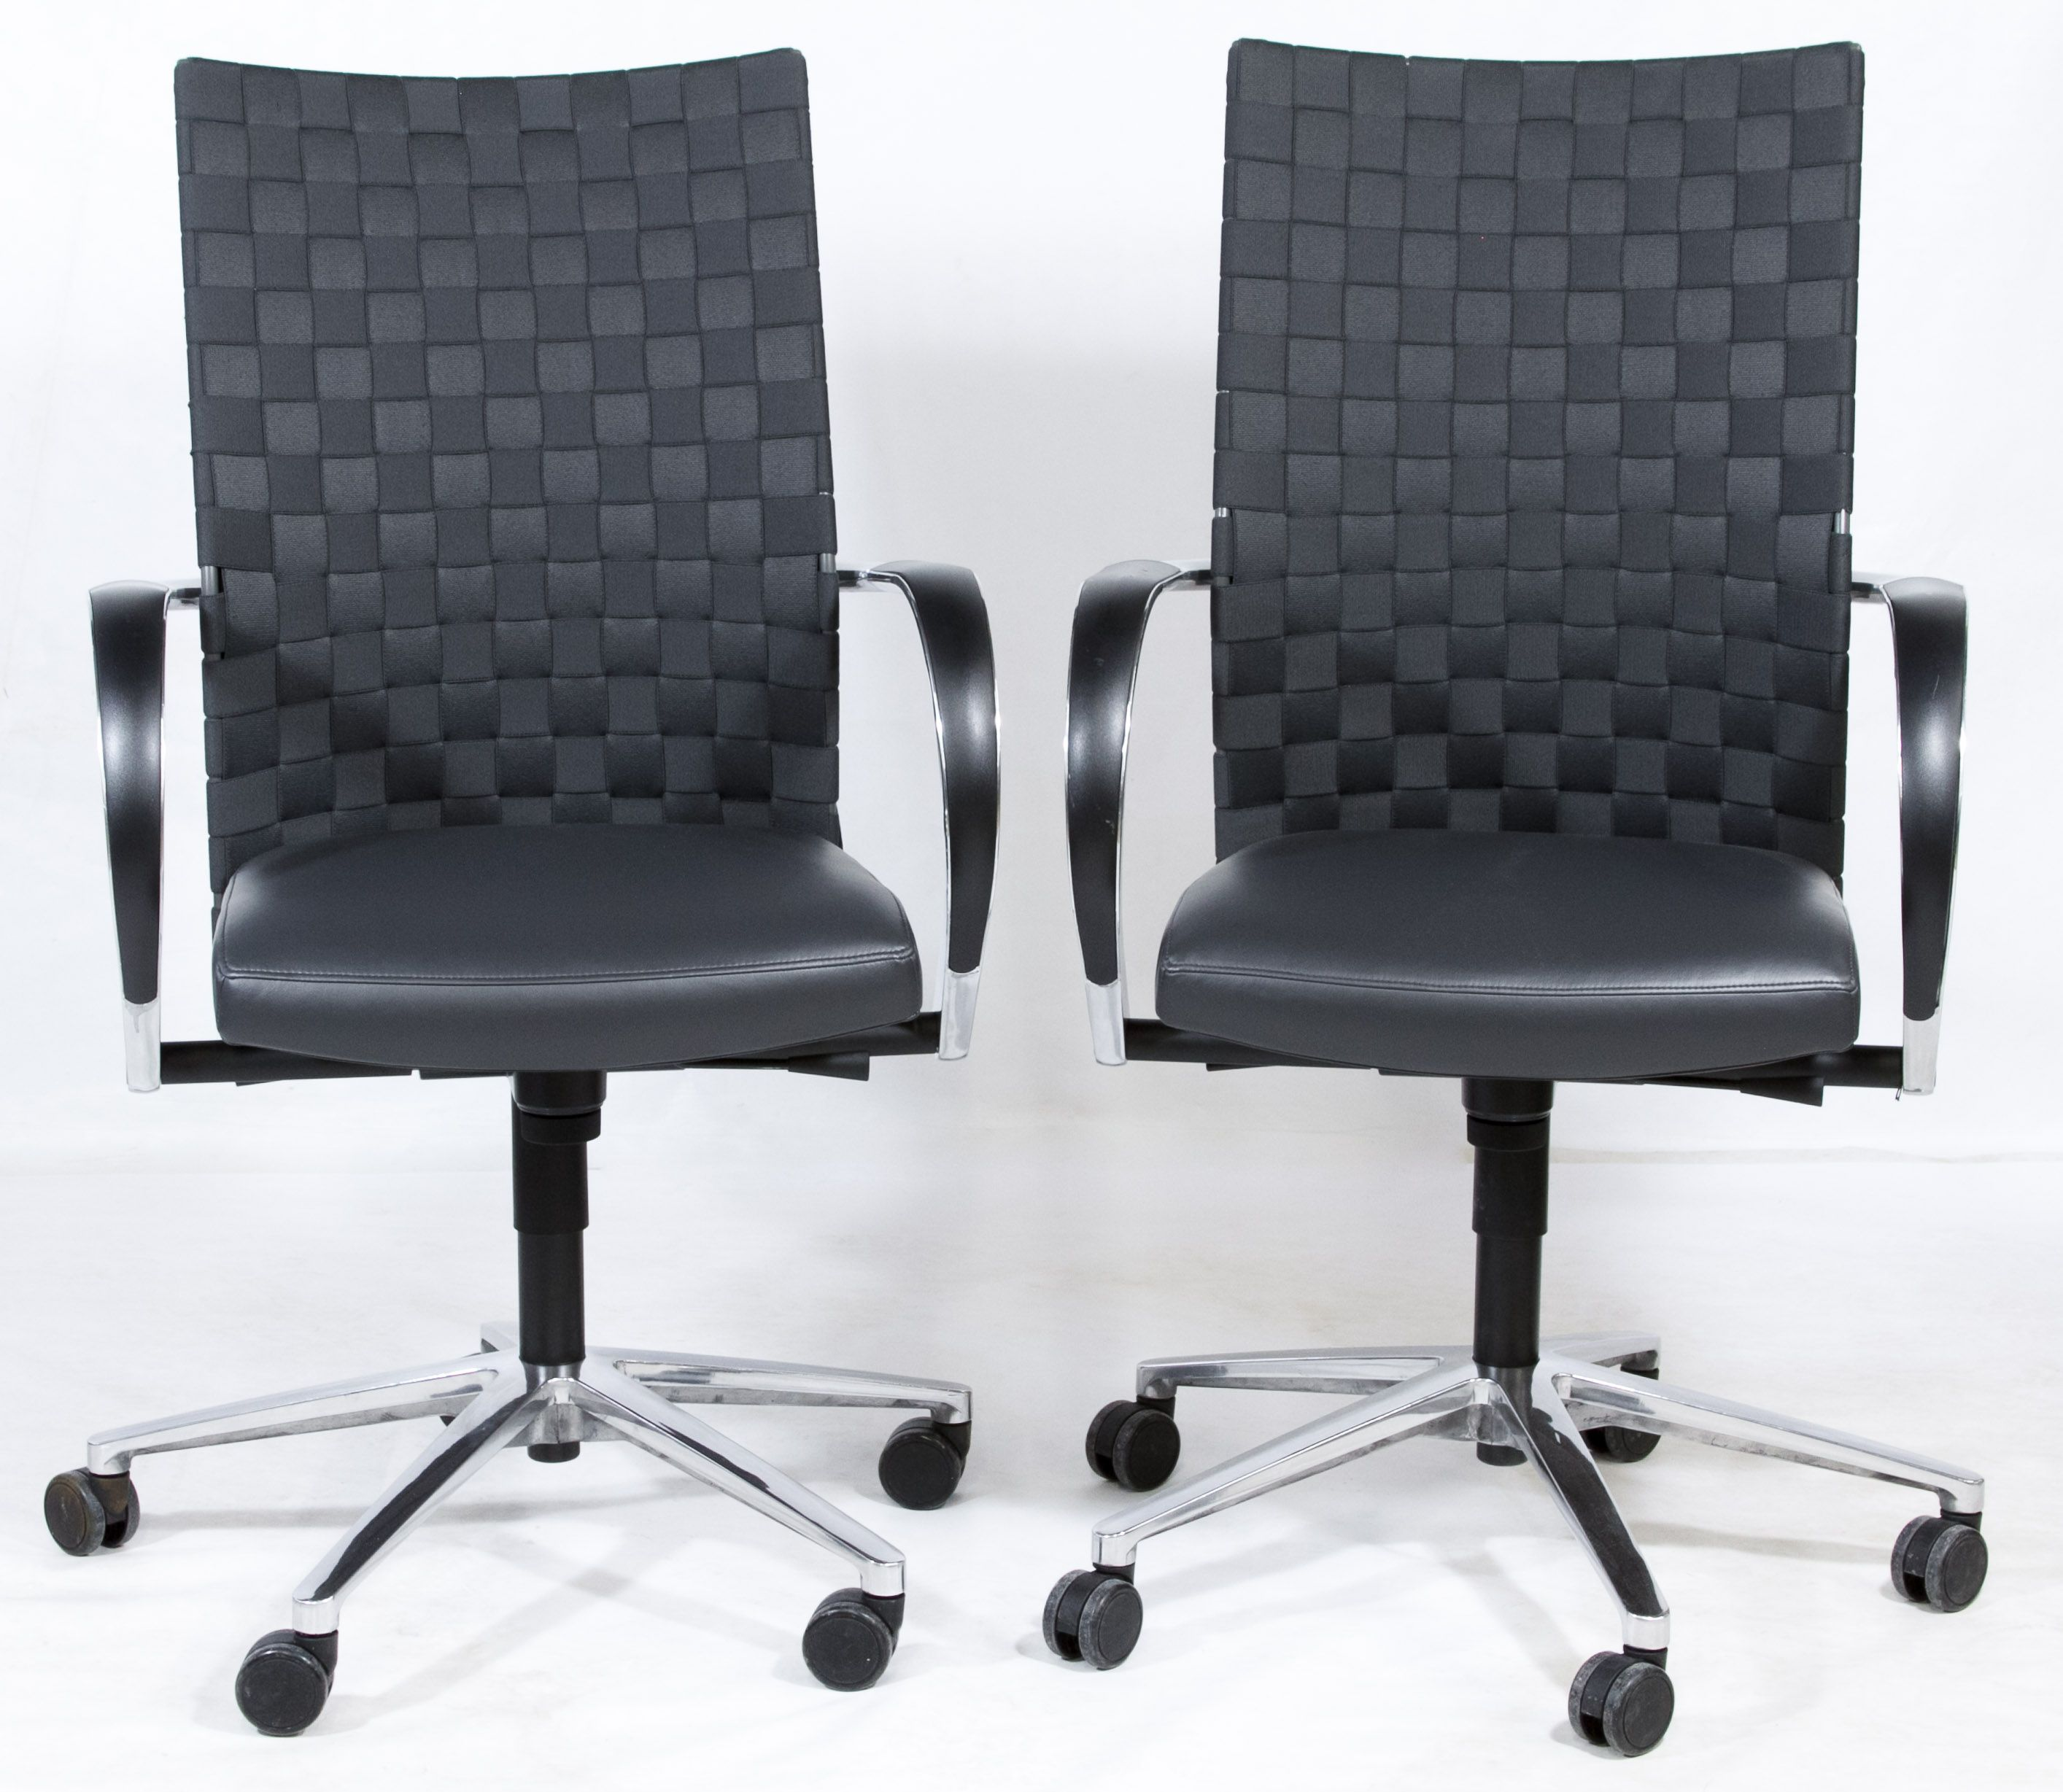 Lot 105 Woven Fabric and Chrome Desk Chairs; Matching